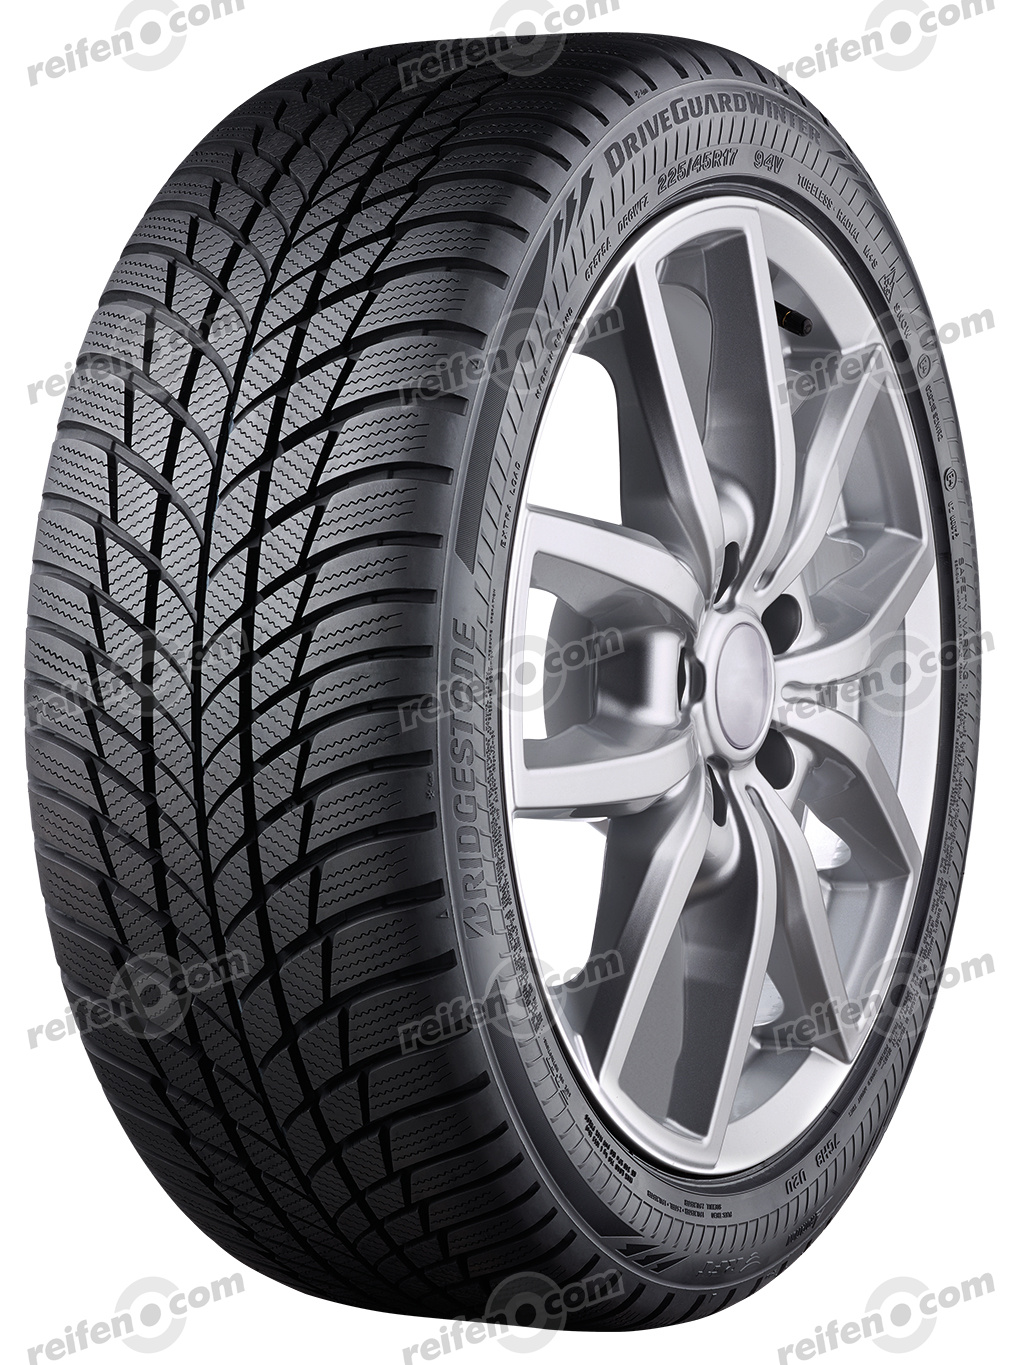 185/65 R15 92H DriveGuard Winter RFT XL  DriveGuard Winter RFT XL